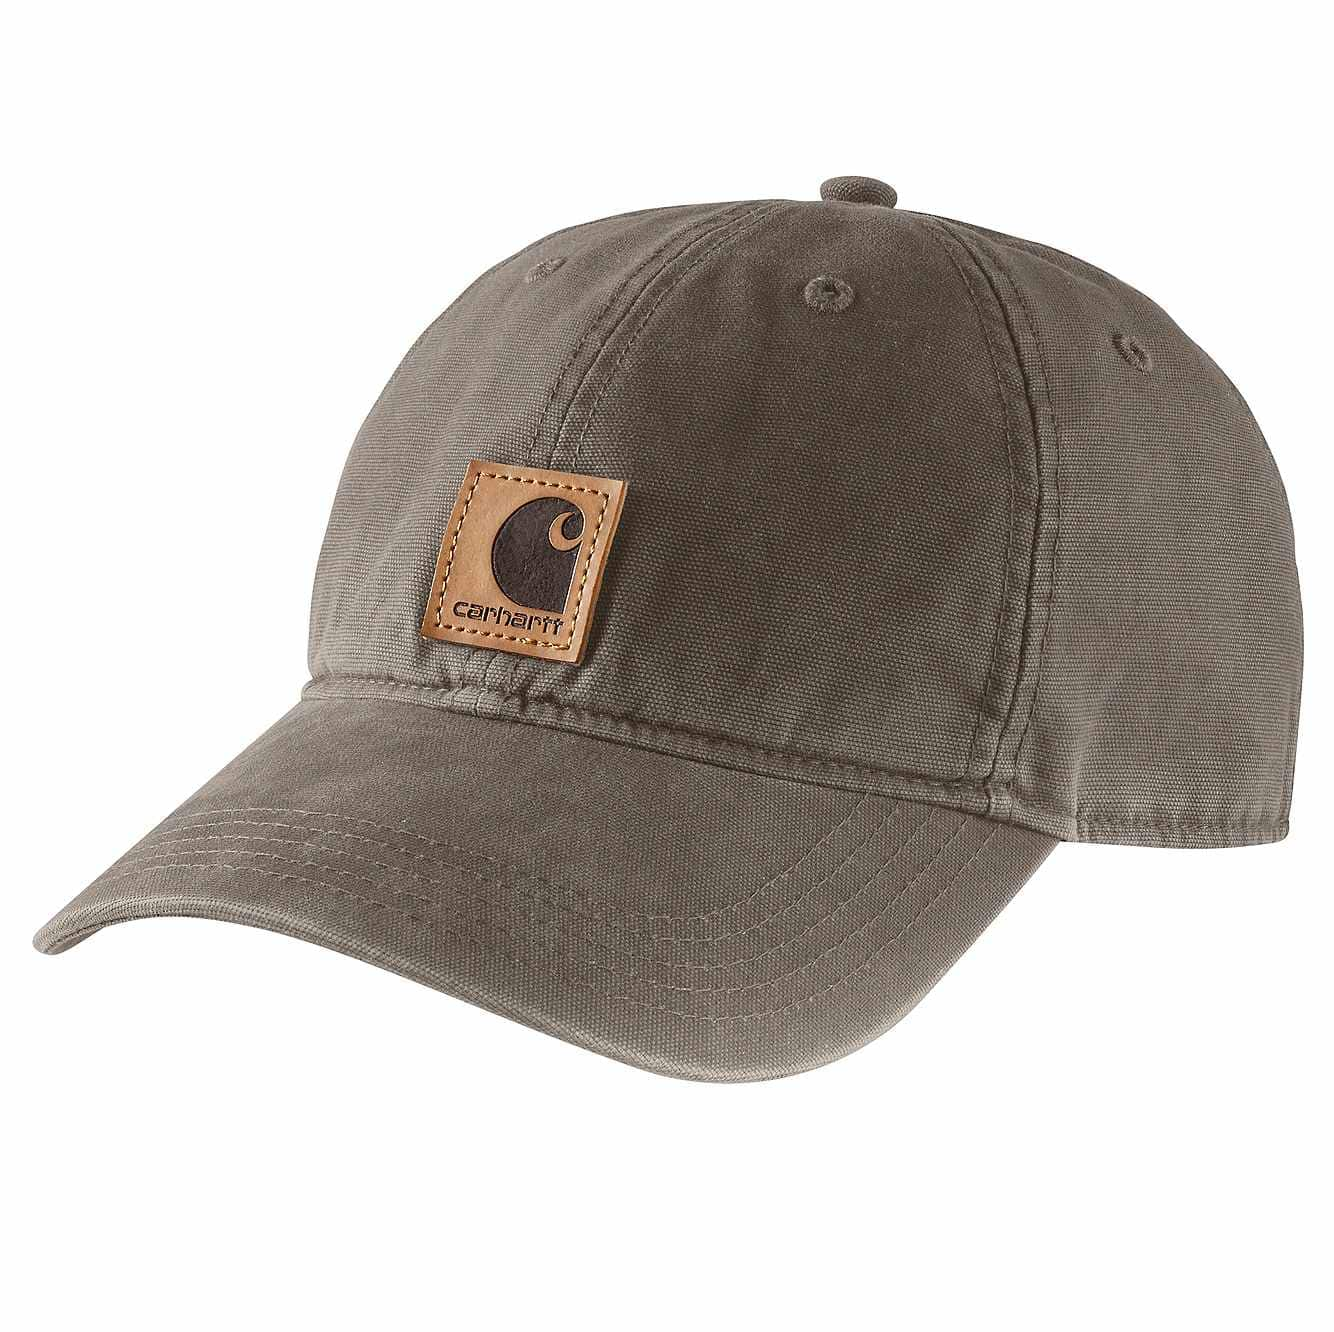 Picture of Odessa Cap in Driftwood